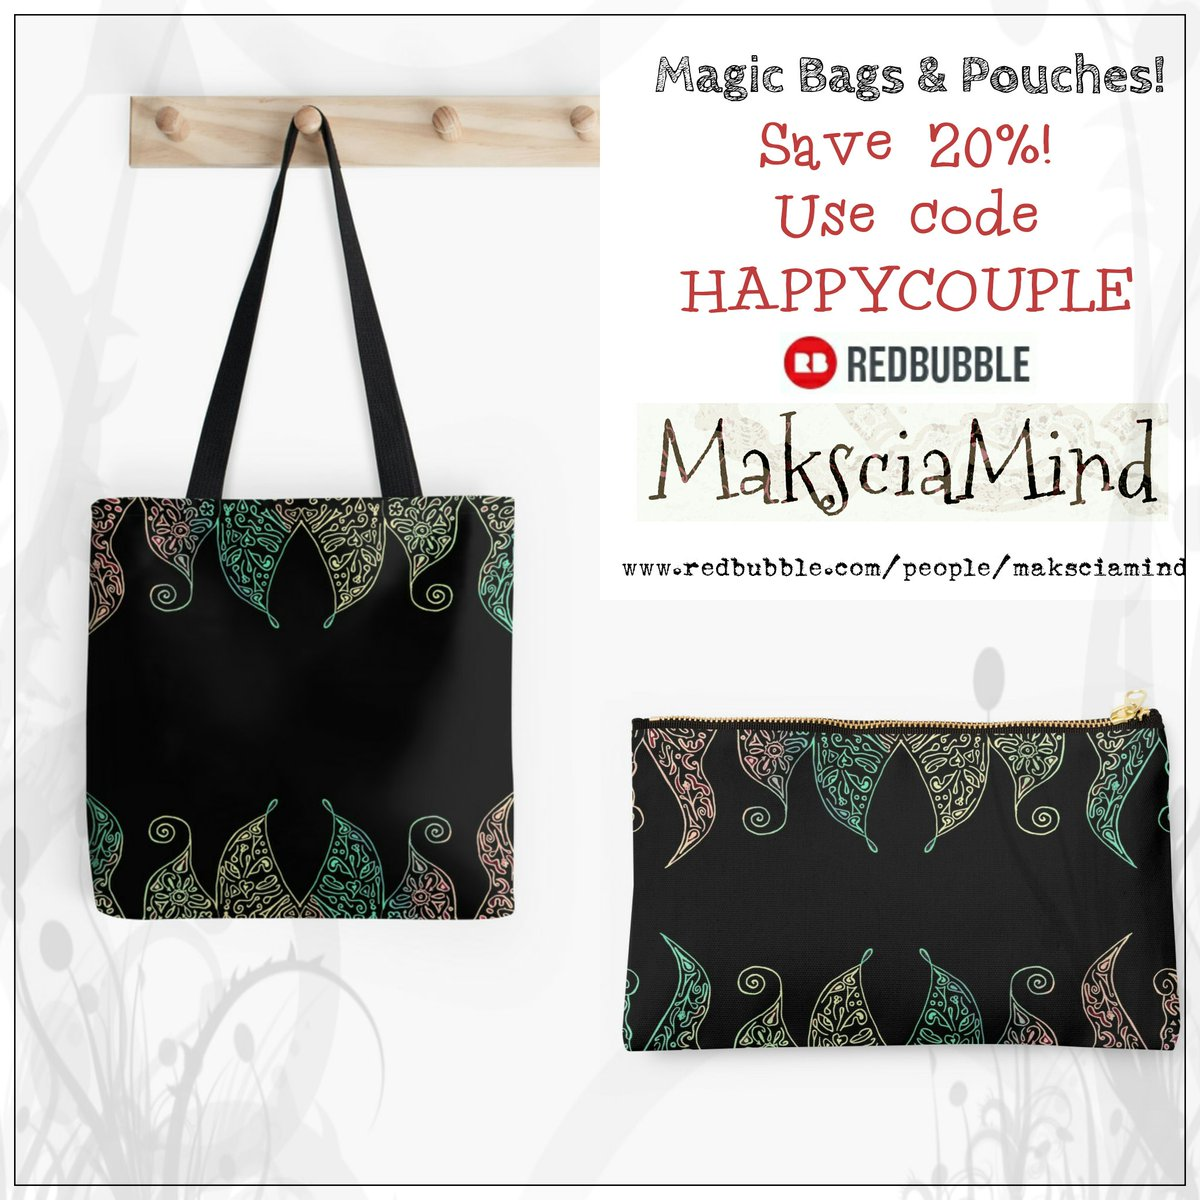 Magic Bags &amp; Pouches - Save 20% Today on my @redbubble Store!   https://www. redbubble.com/people/makscia mind/works/22646605-magic-herb?asc=u&amp;p=tote-bag&amp;rel=carousel &nbsp; …   #design #accessories #clutch #borse #multicolored<br>http://pic.twitter.com/SSjKdjveDX